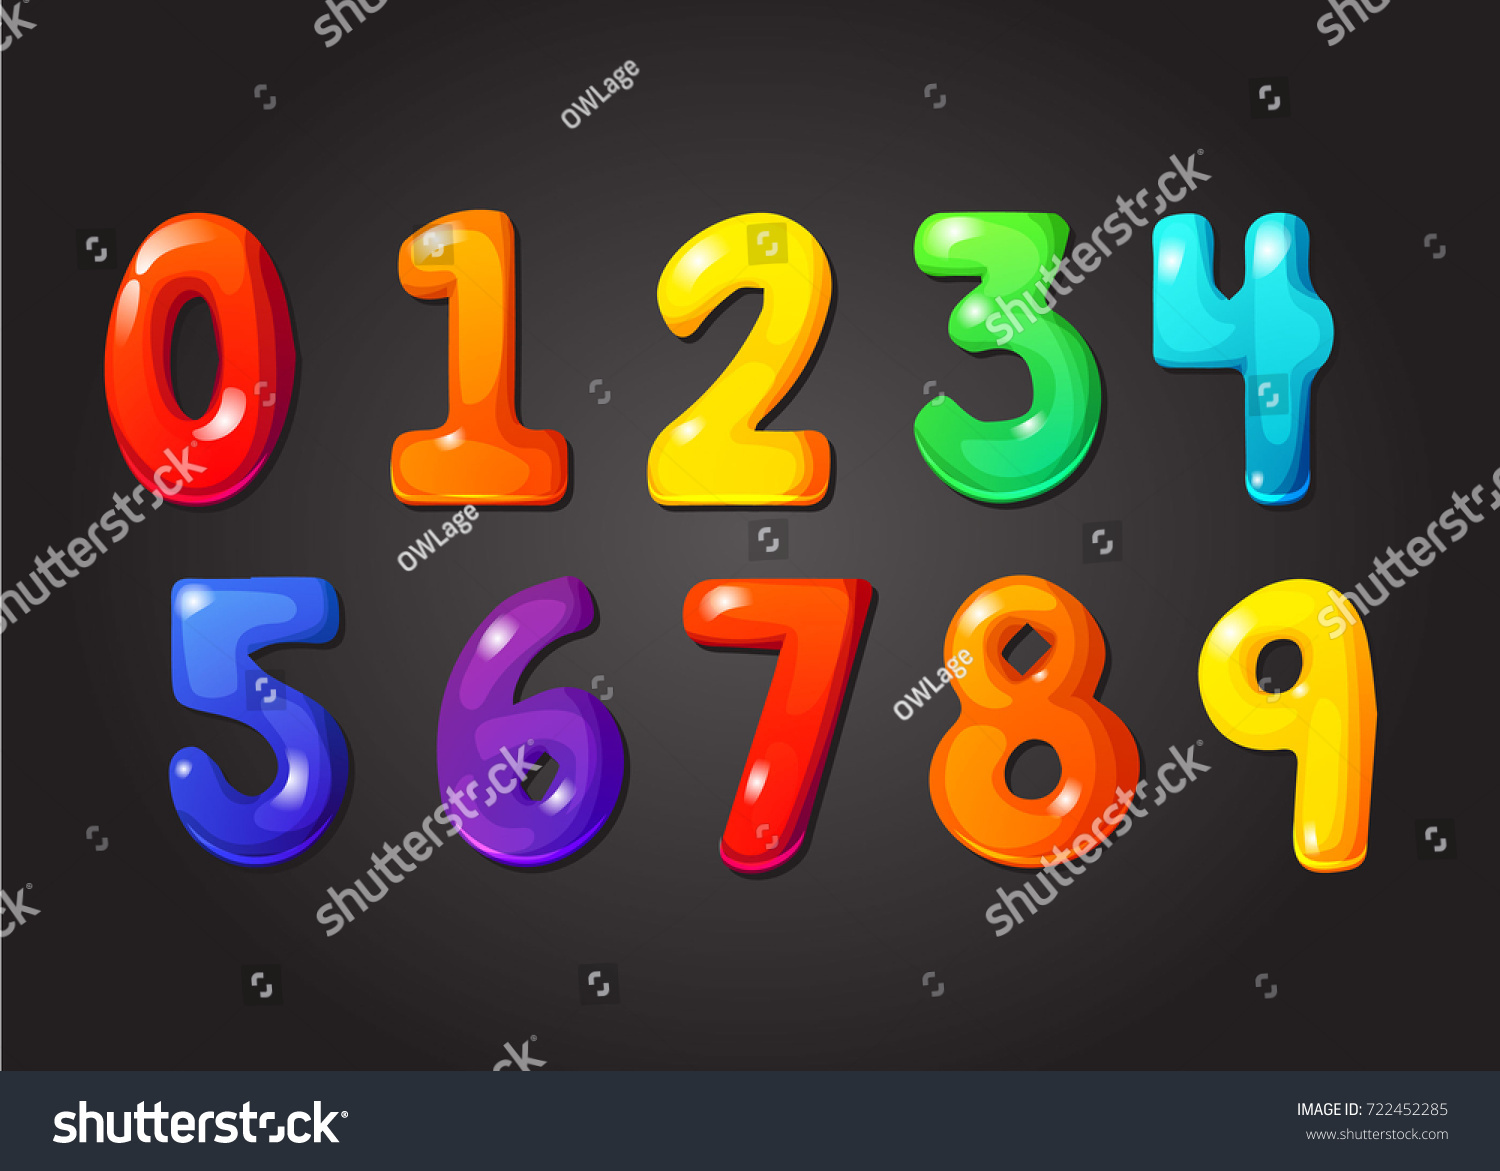 Rainbow Font 123 Jelly Numeral Alphabet Candy Color Kid Numbers Character